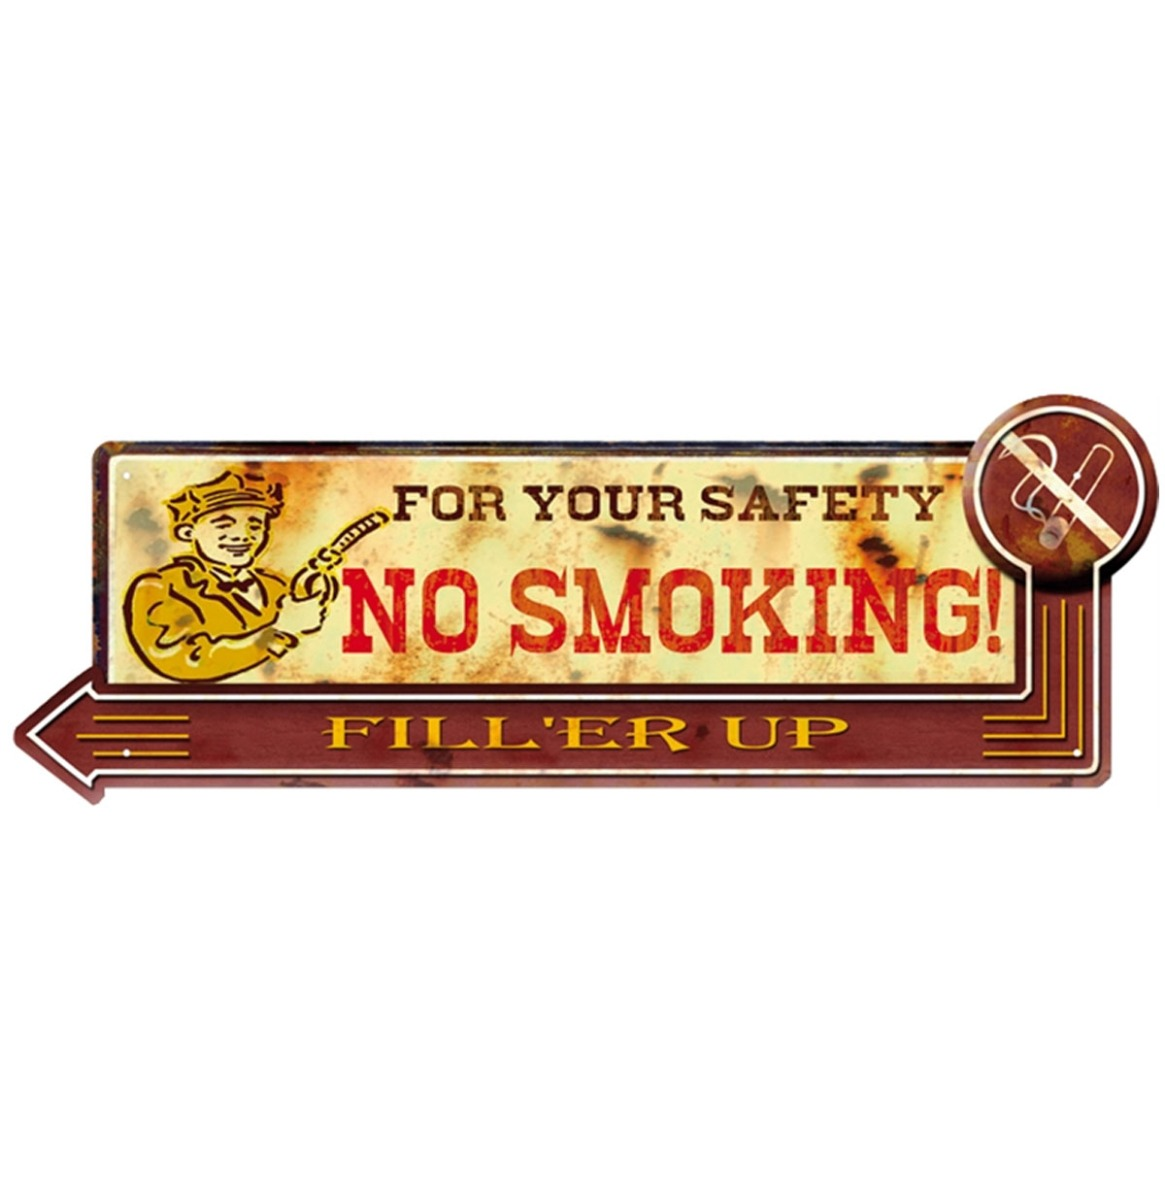 For Your Safety No Smoking Metalen Bord - 50 x 18 cm